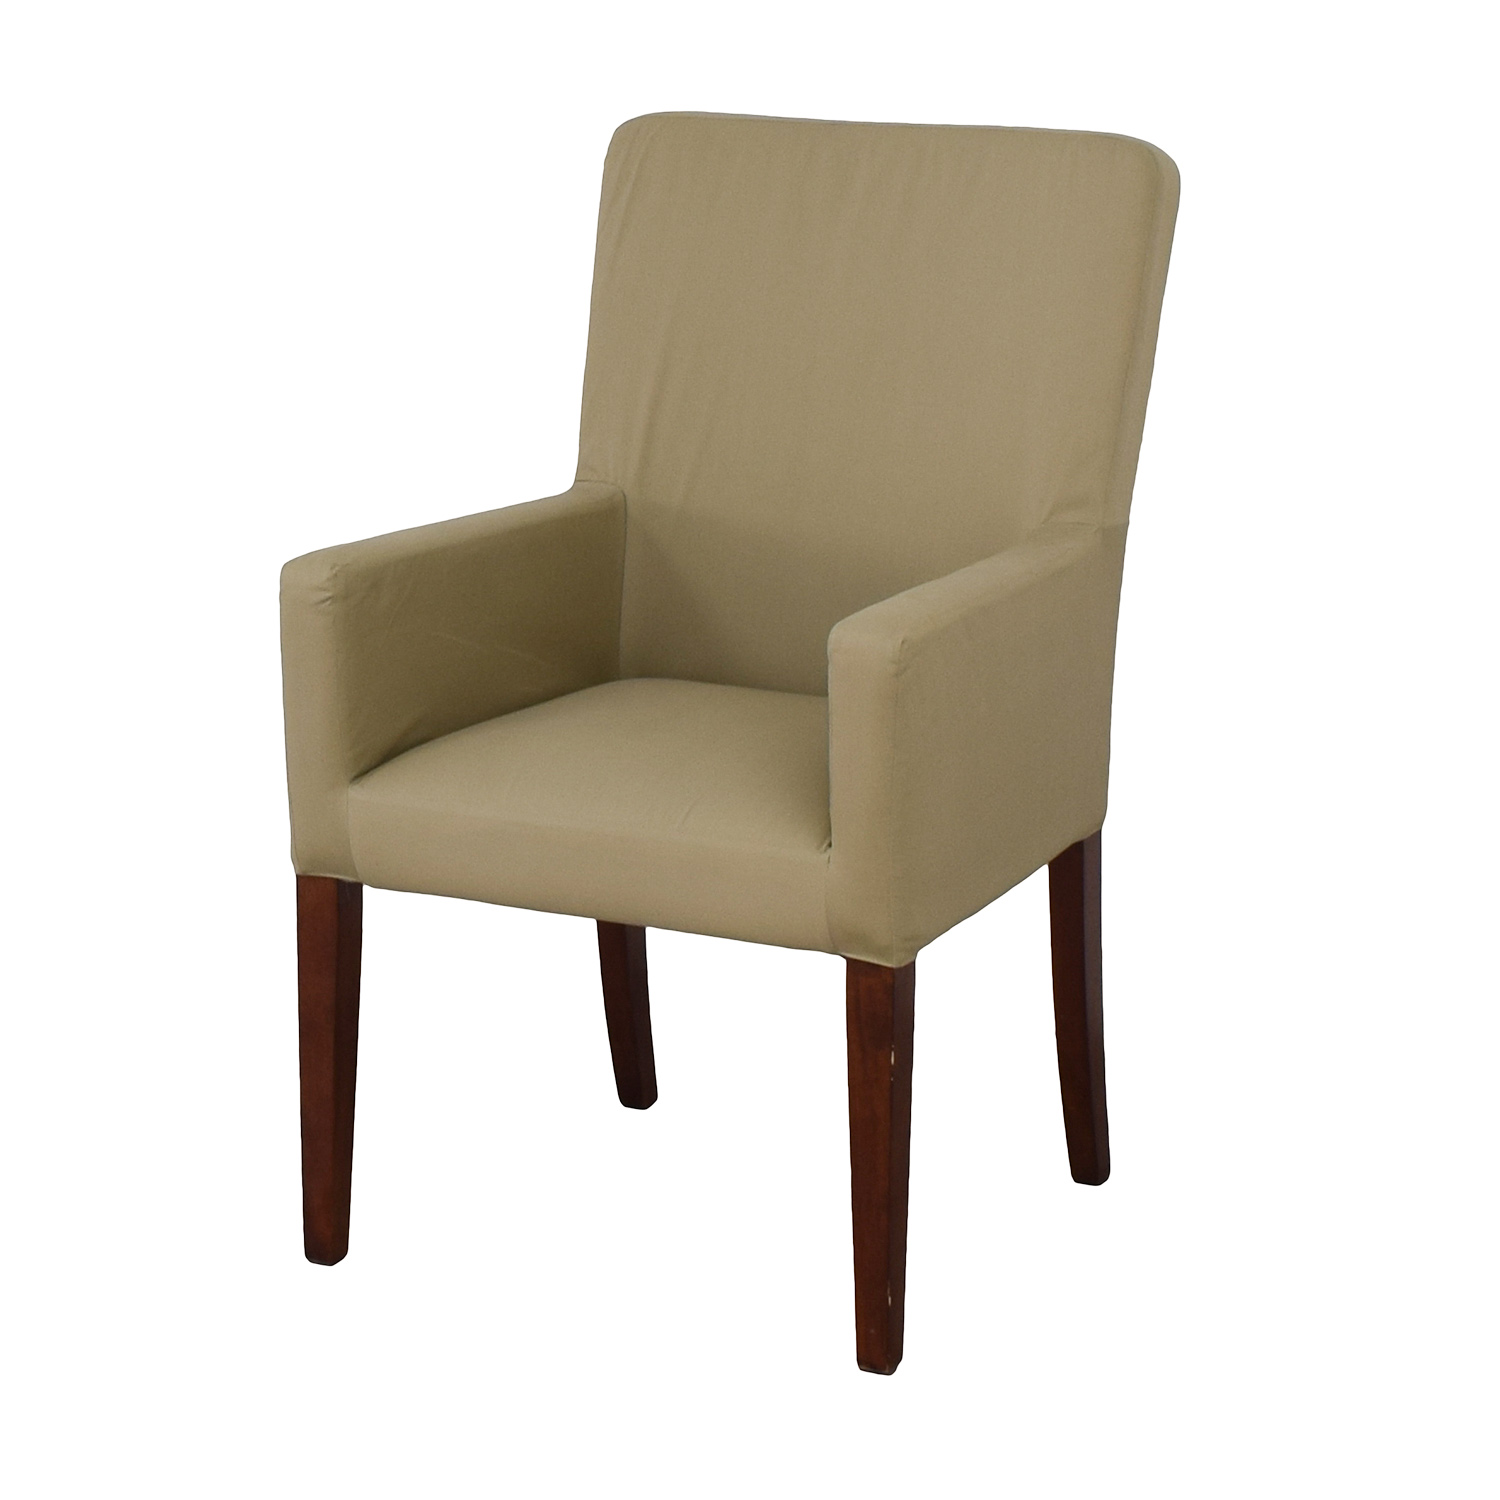 Potters Barn Chair: Pottery Barn Pottery Barn Megan Beige Accent